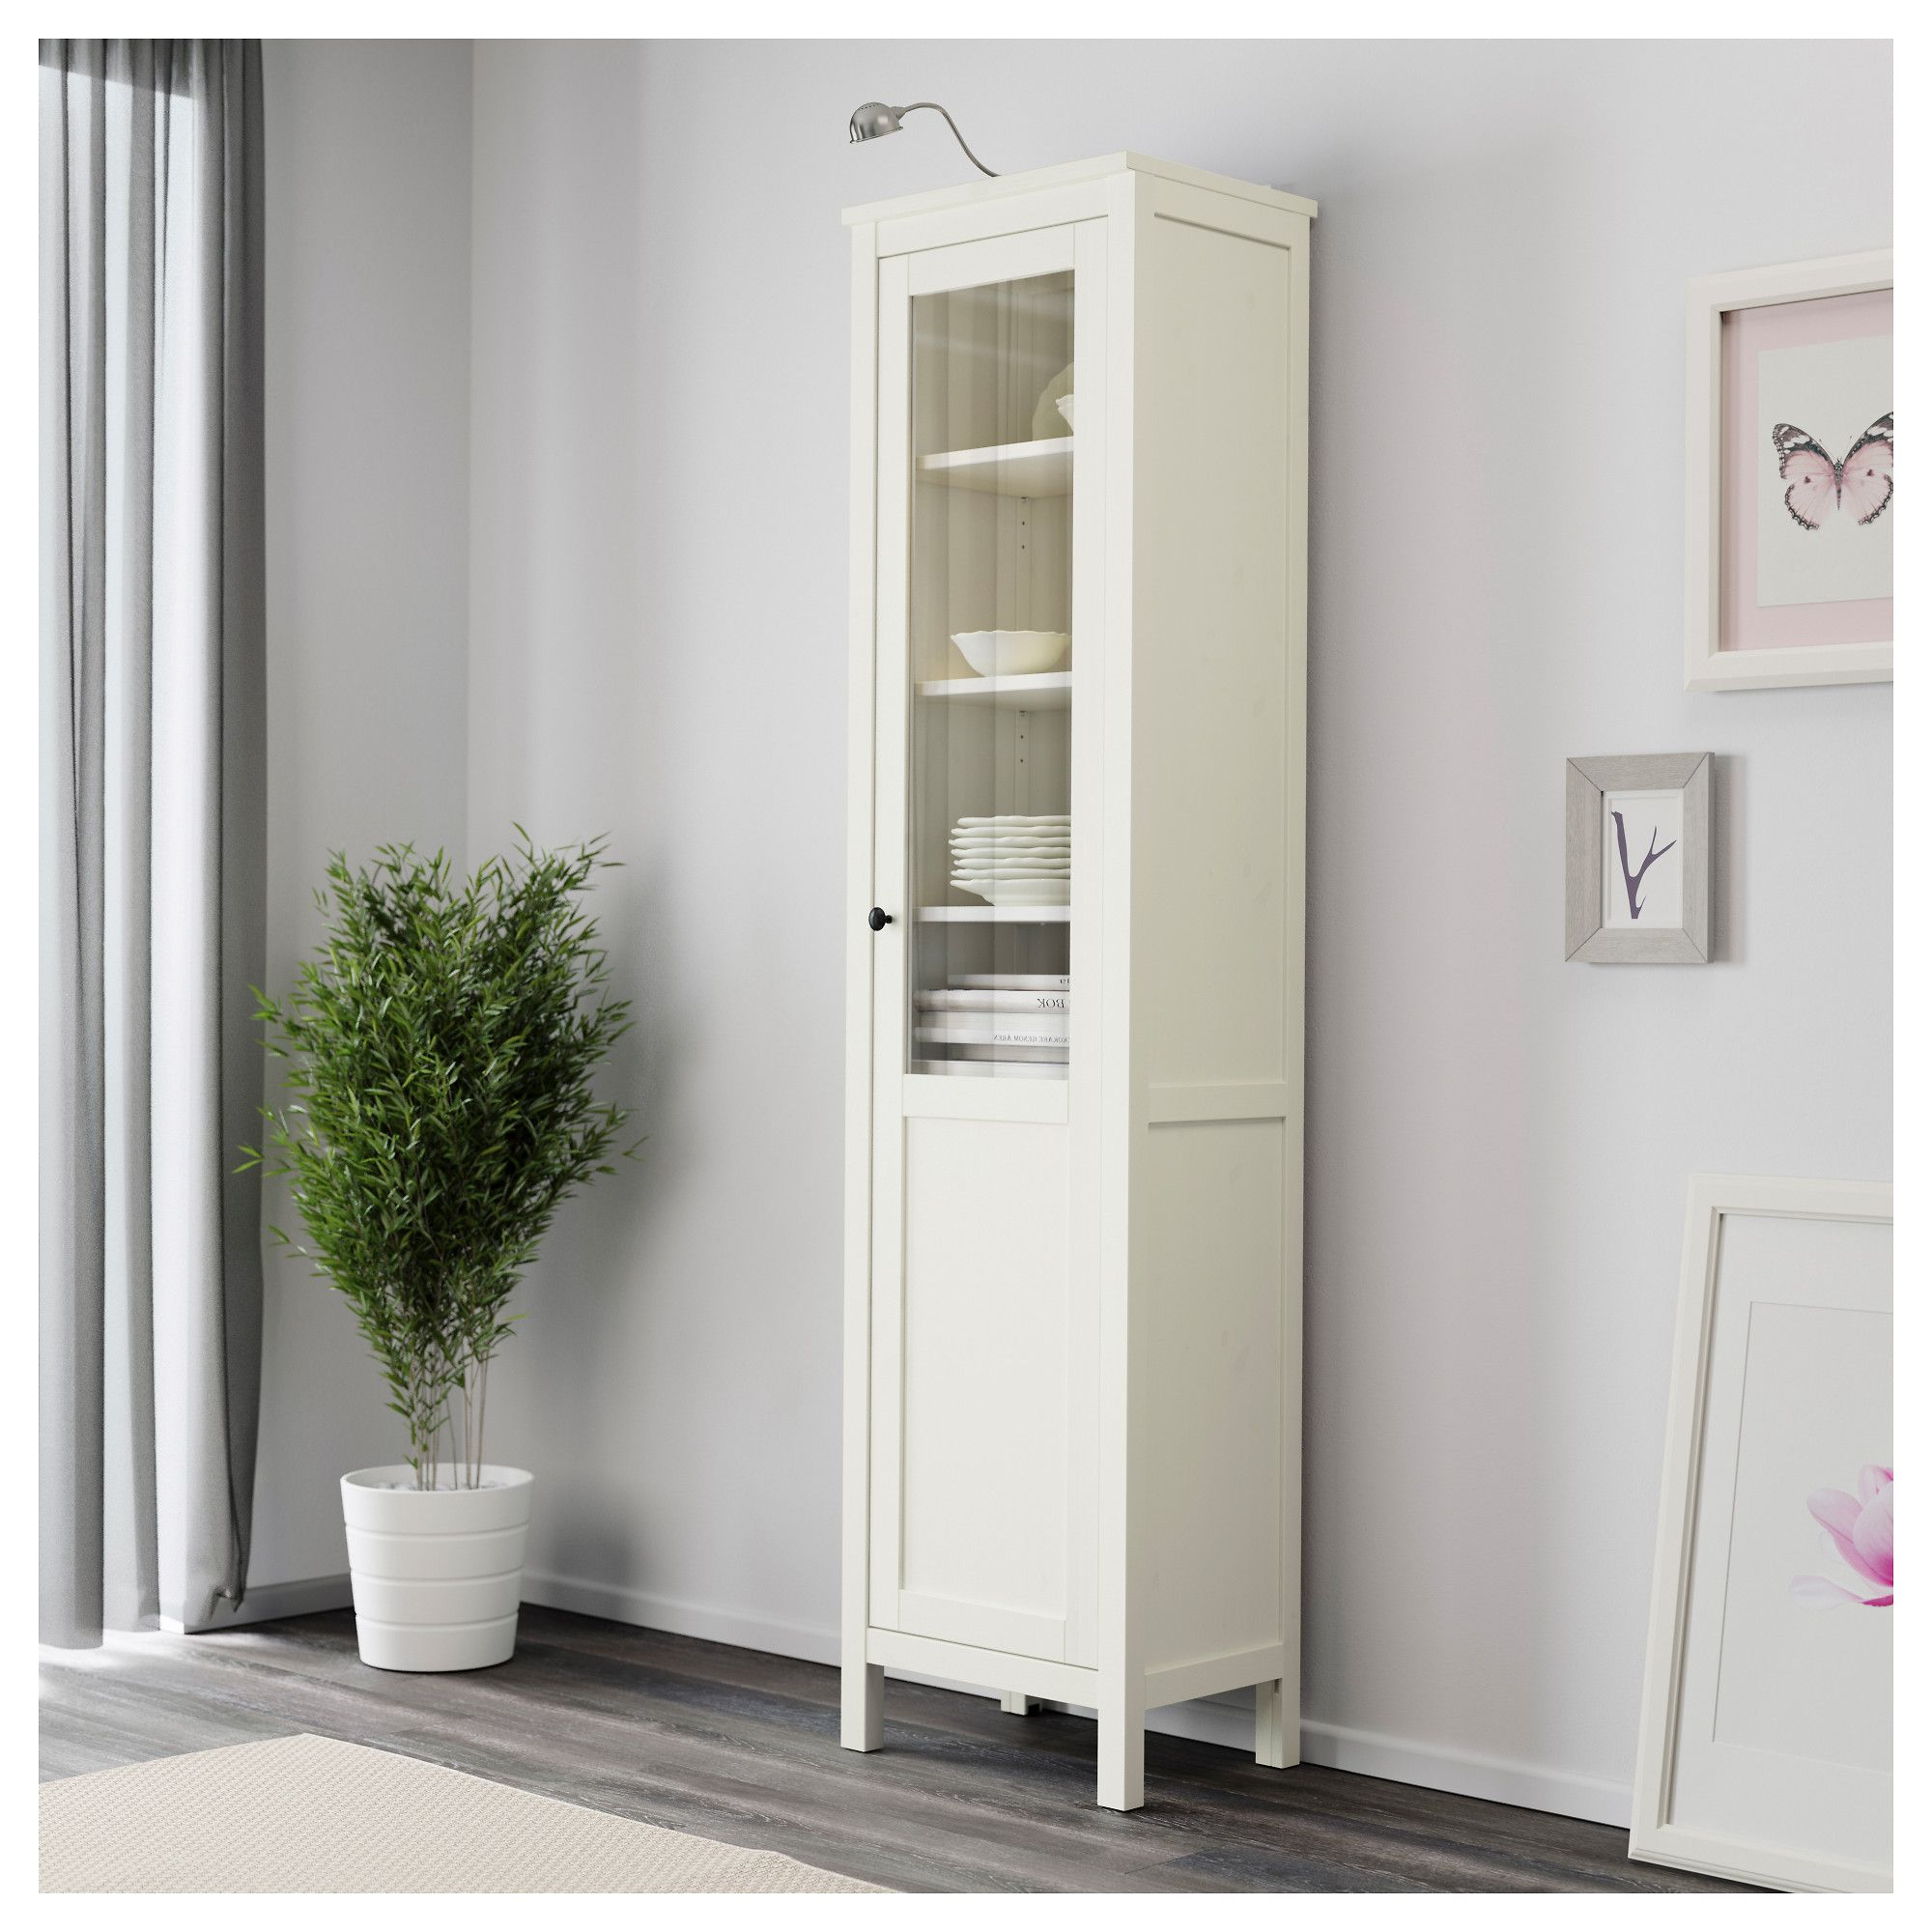 Etonnant IKEA HEMNES Cabinet With Panel/glass Door White Stain 49x197 Cm Solid Wood  Has A Natural Feel.